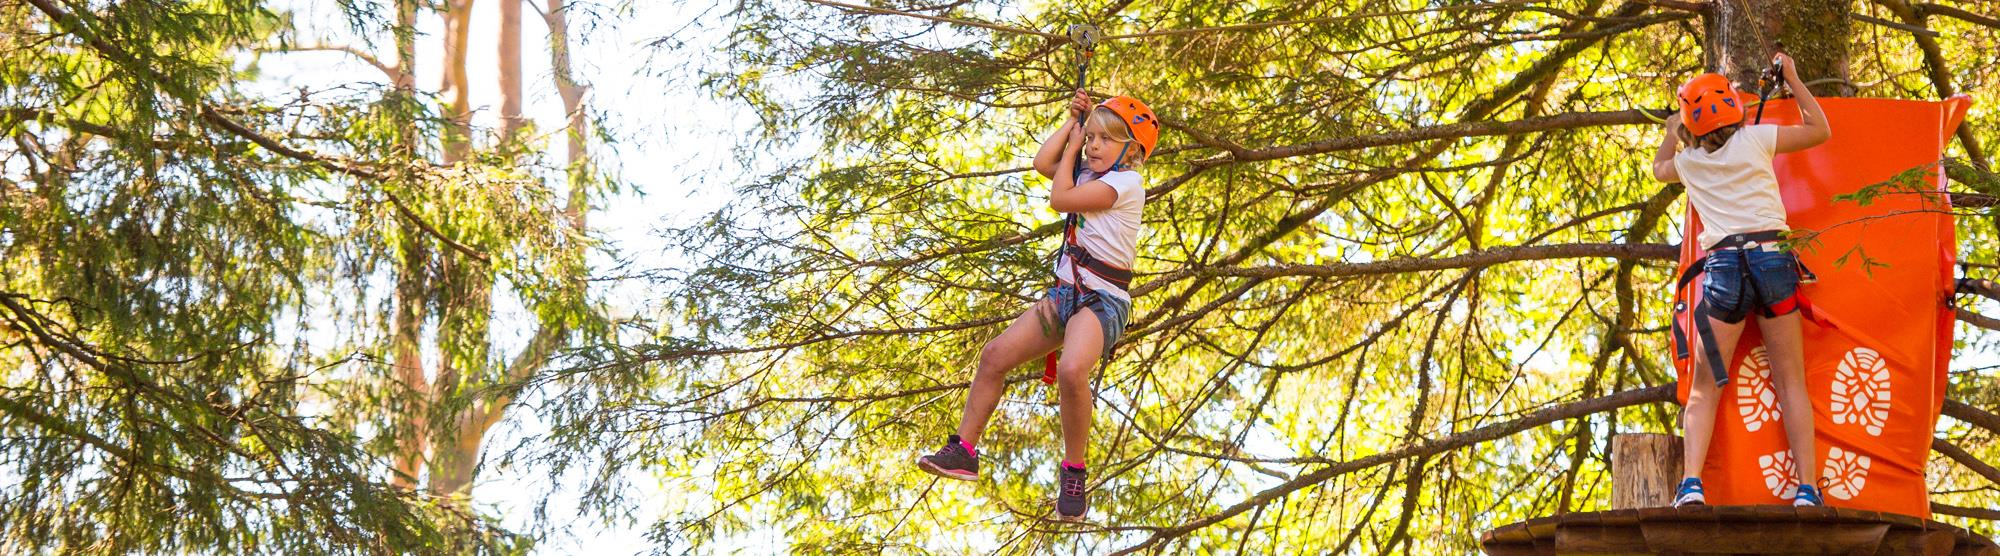 Outdoor activities for children